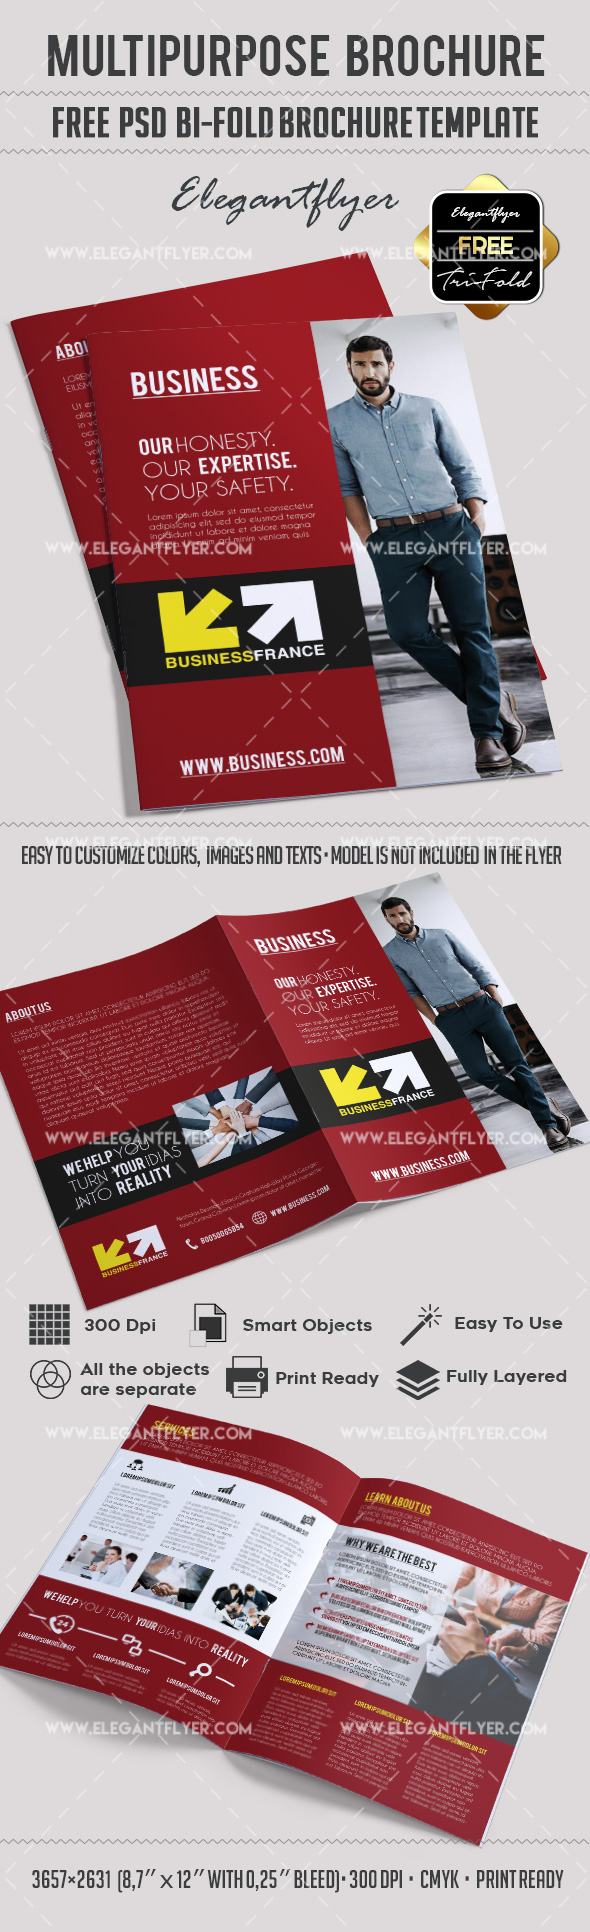 Free multipurpose brochure in psd by elegantflyer for 2 fold brochure template psd